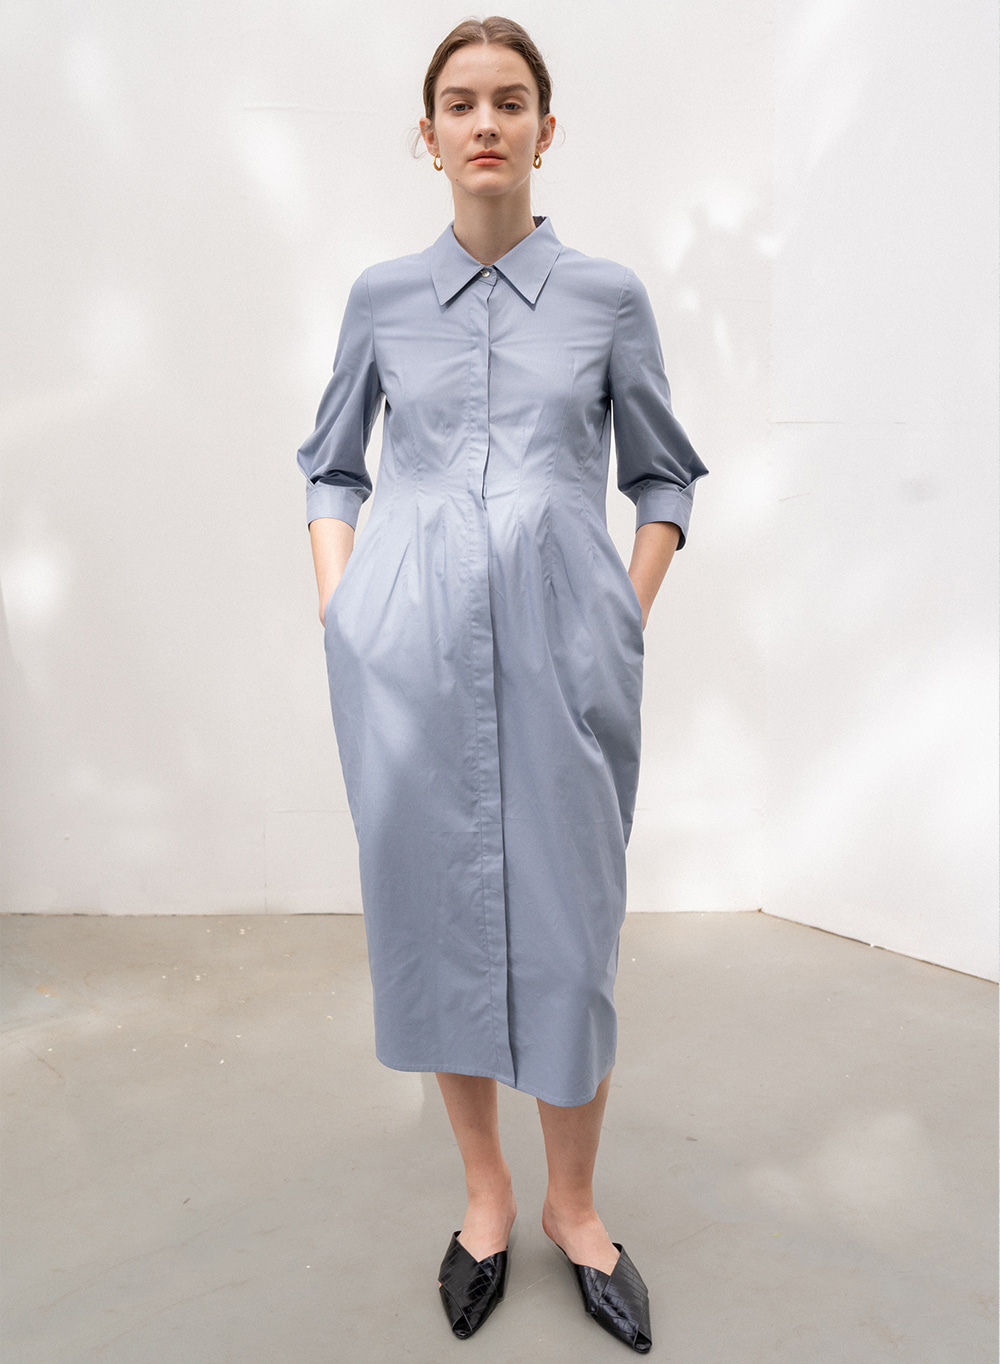 [ESSENTIAL] Silhouette Shirt Dress Blue